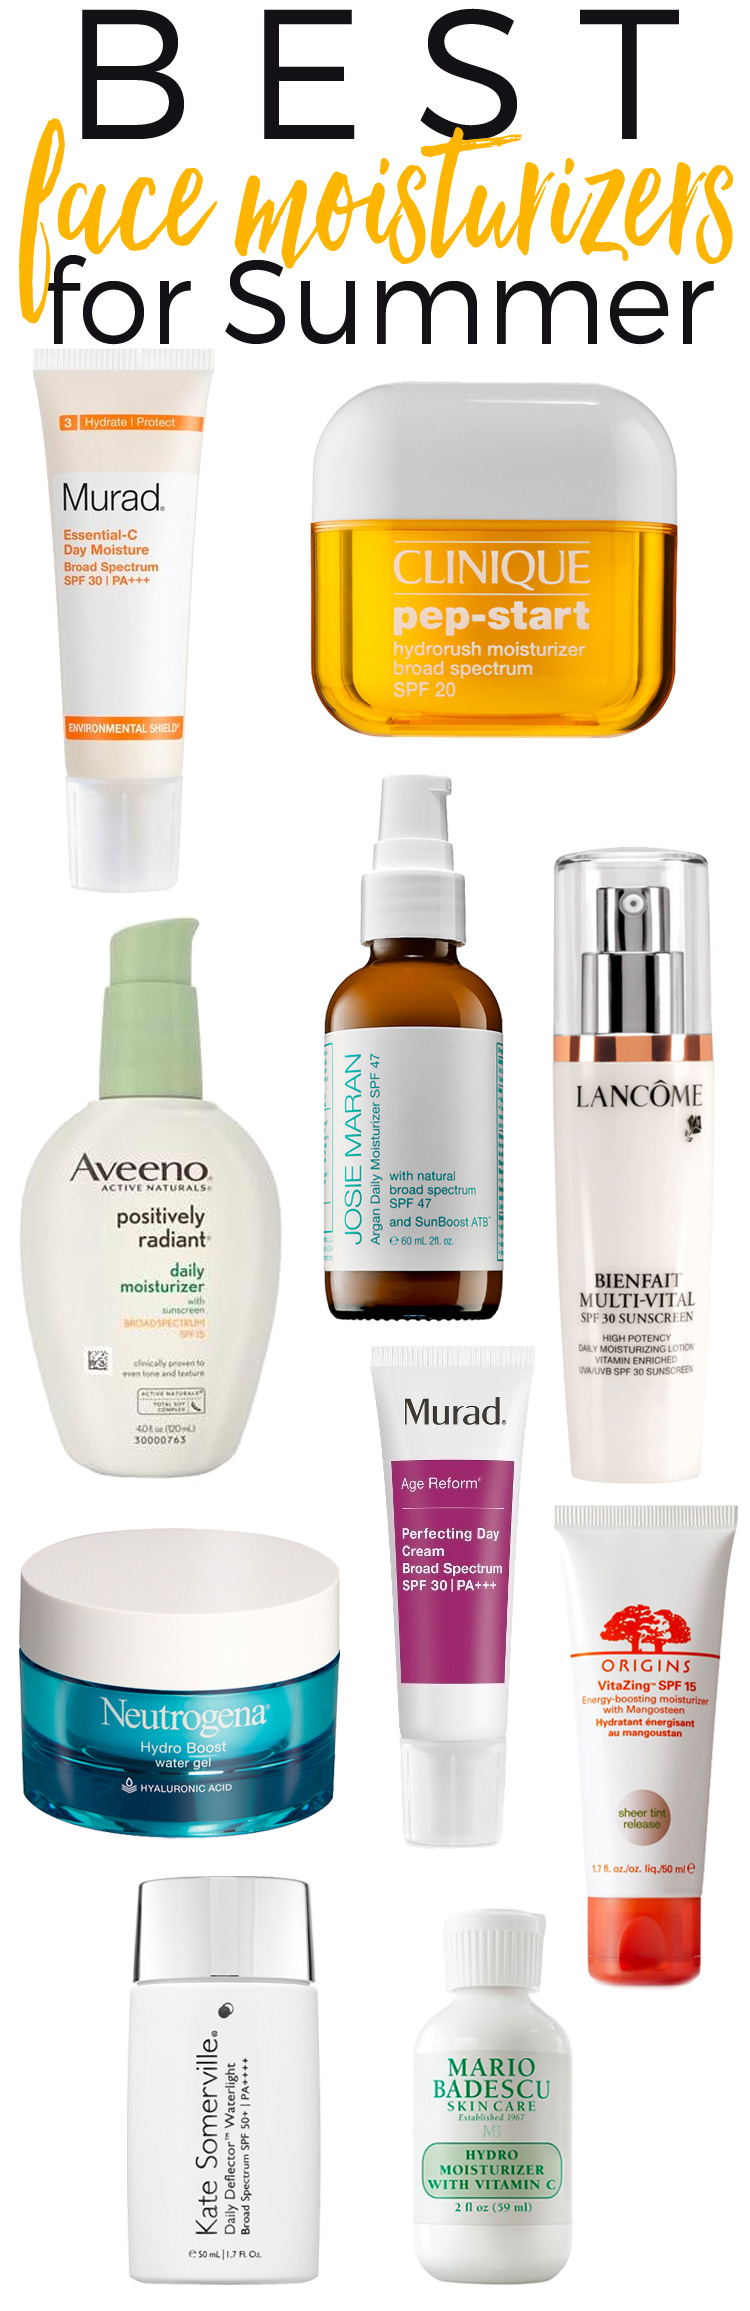 The Best 10 Face Moisturizers for Summer